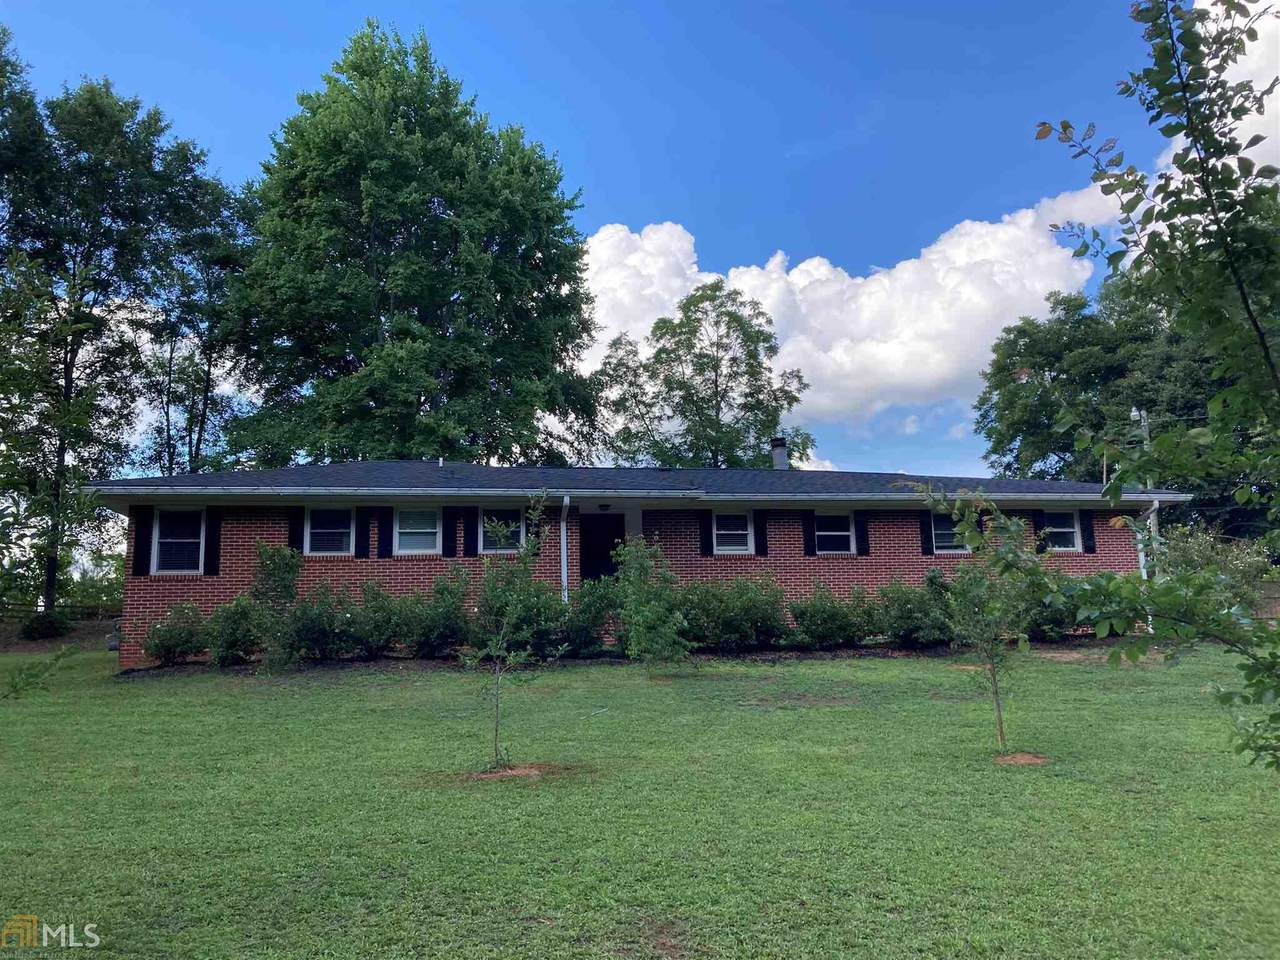 2363 Airport Dr - Photo 1